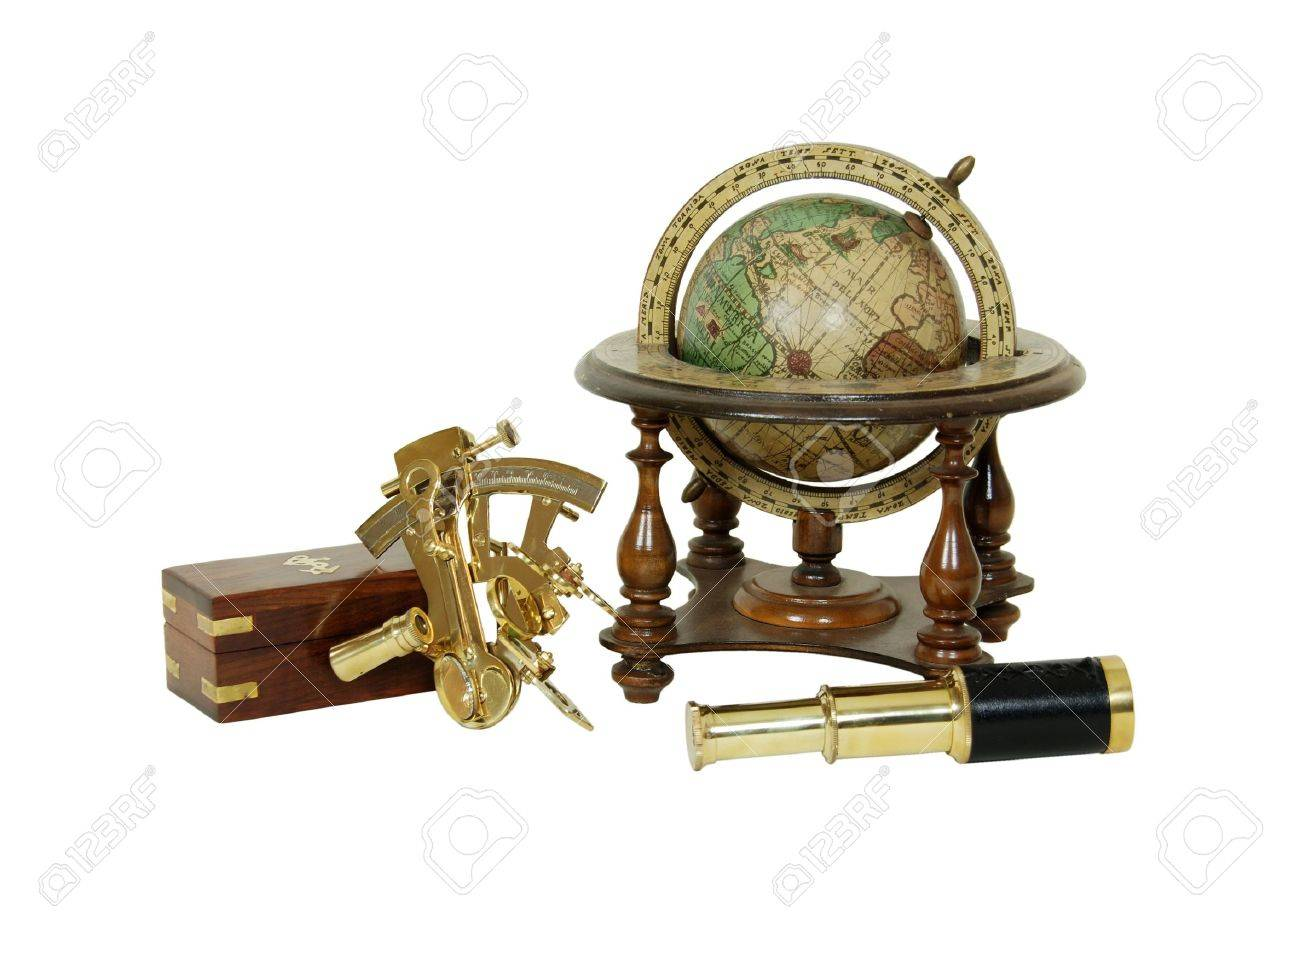 Brass Sextant used for navigating by the stars, telescoping telescope used to see distances, Old world globe with basic navigation notations Stock Photo - 3954371